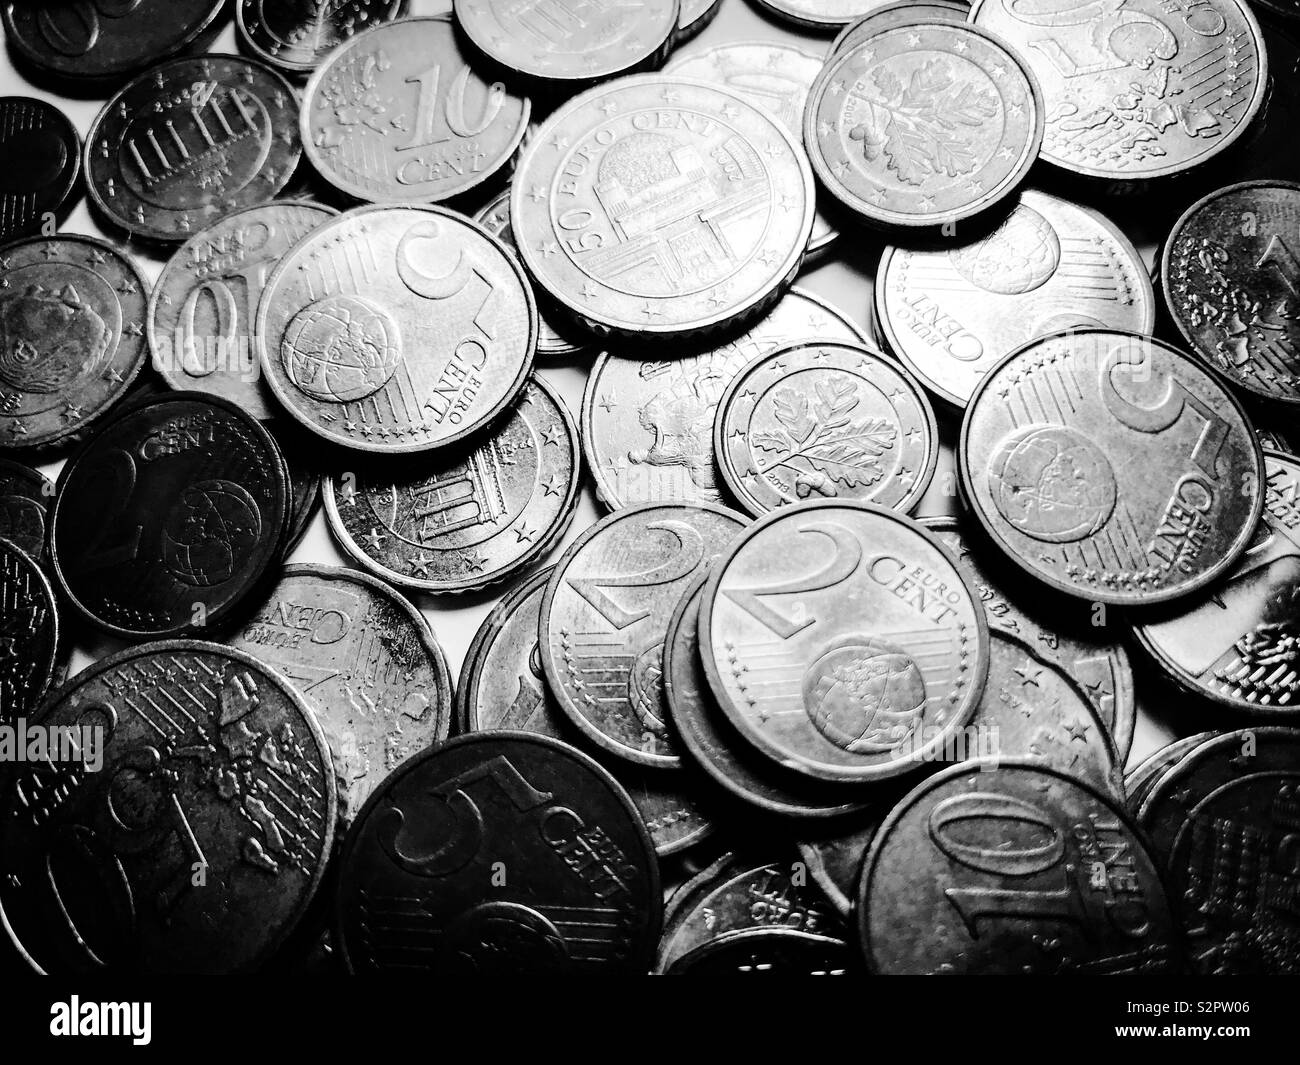 Pile of mixed euro coins - black and white - Stock Image